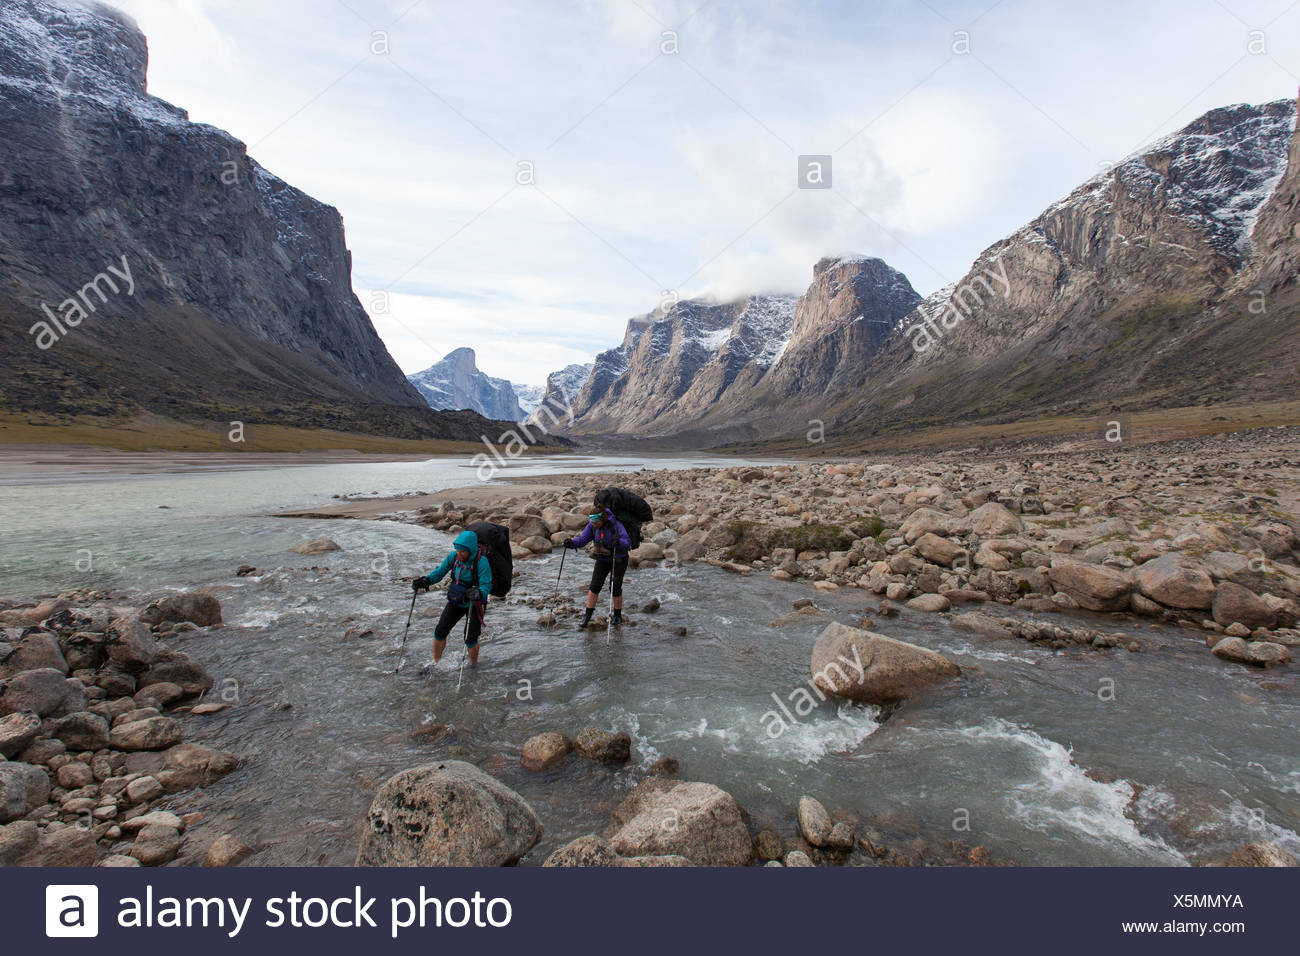 Hikers cross a creek in Auyuittuq National Park, Nunavut, Canada - Stock Image